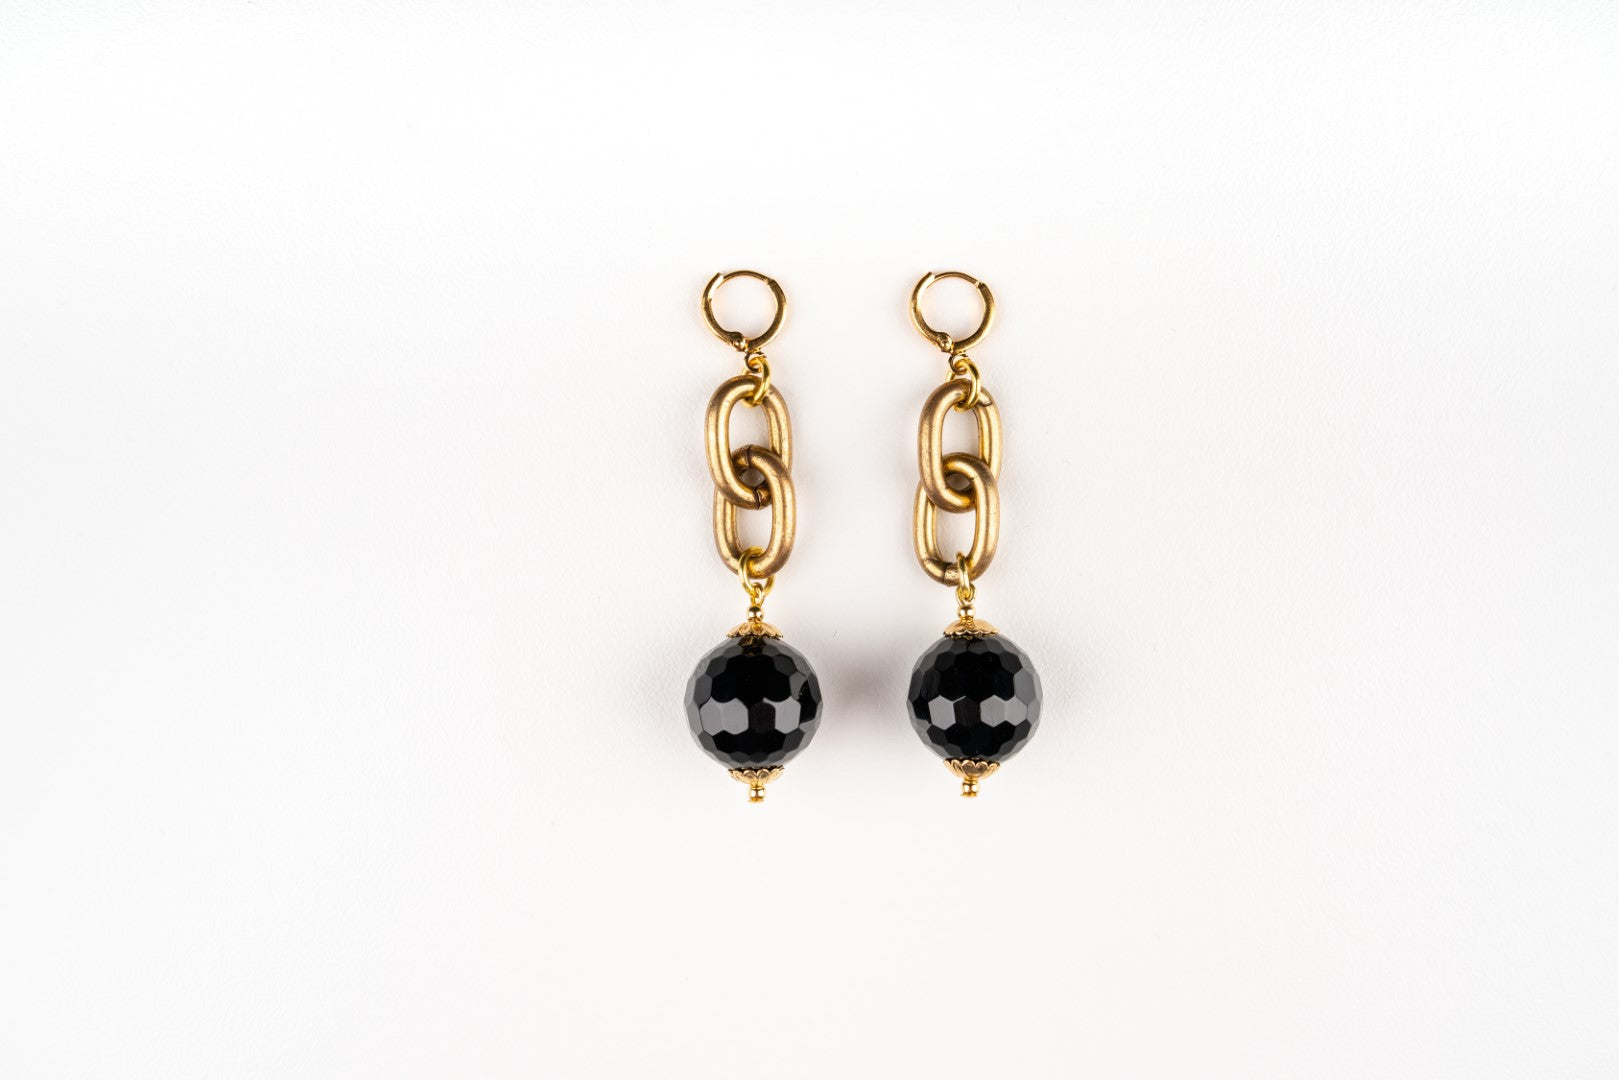 Carolily Finery earrings made from faceted black onyx, antique gold plated chain